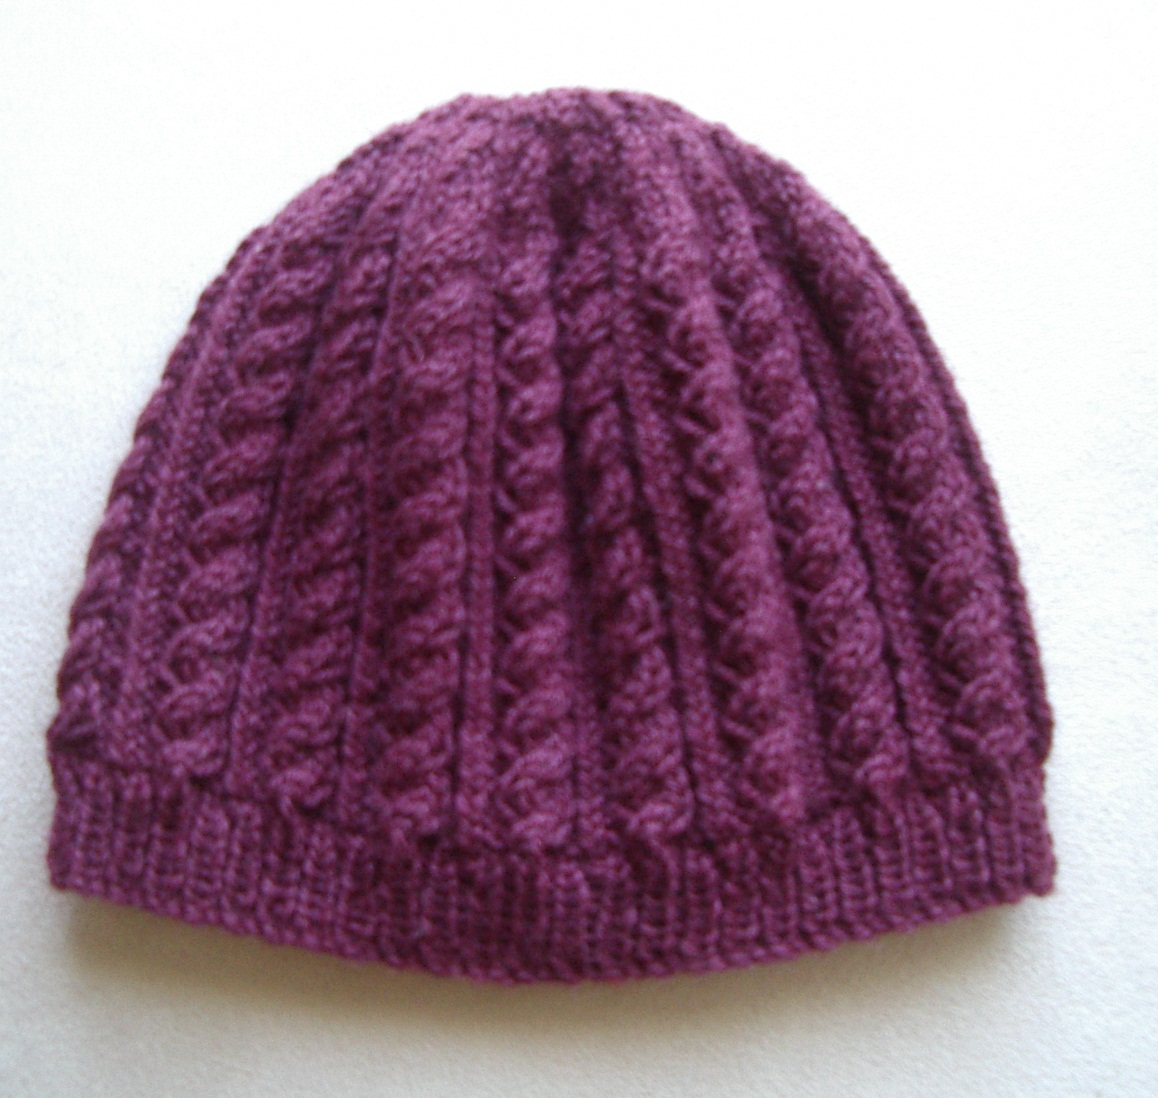 Knitting Pattern For Beanie For Baby : Sally - 8ply Cable